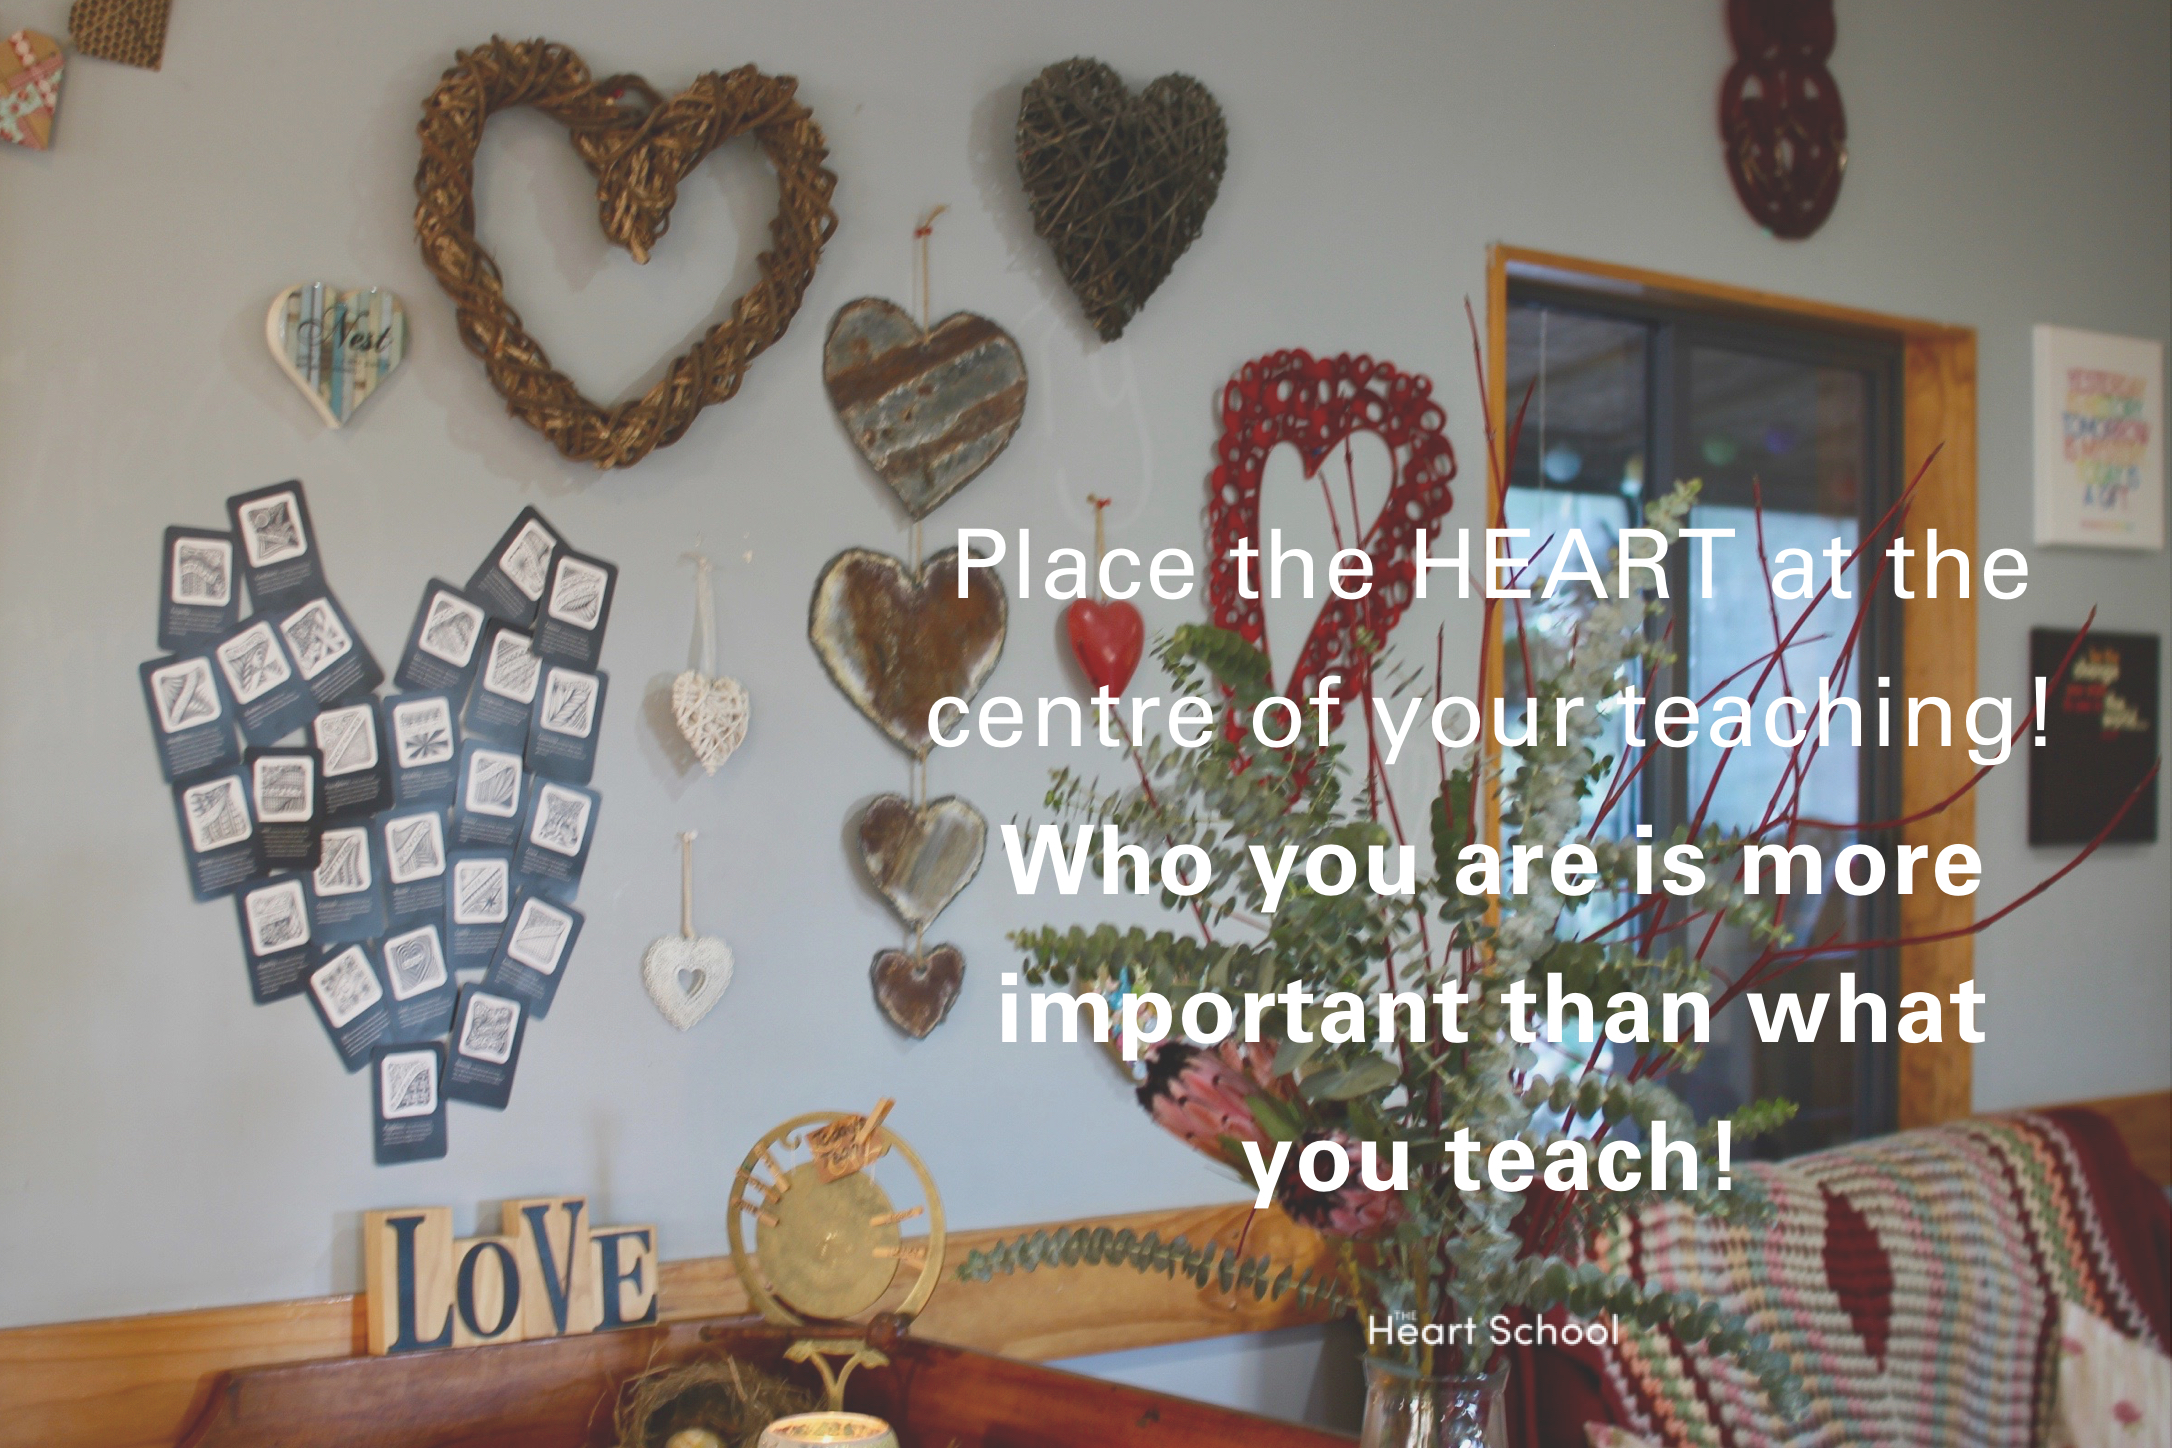 Children never forget the teachers who gave them memories that are heartfelt. The rich deposits of love get stamped in the child's heart forever! When a child experiences satisfaction and pleasure through LOVE and CARE then the imprint will indeed be one of the heart .